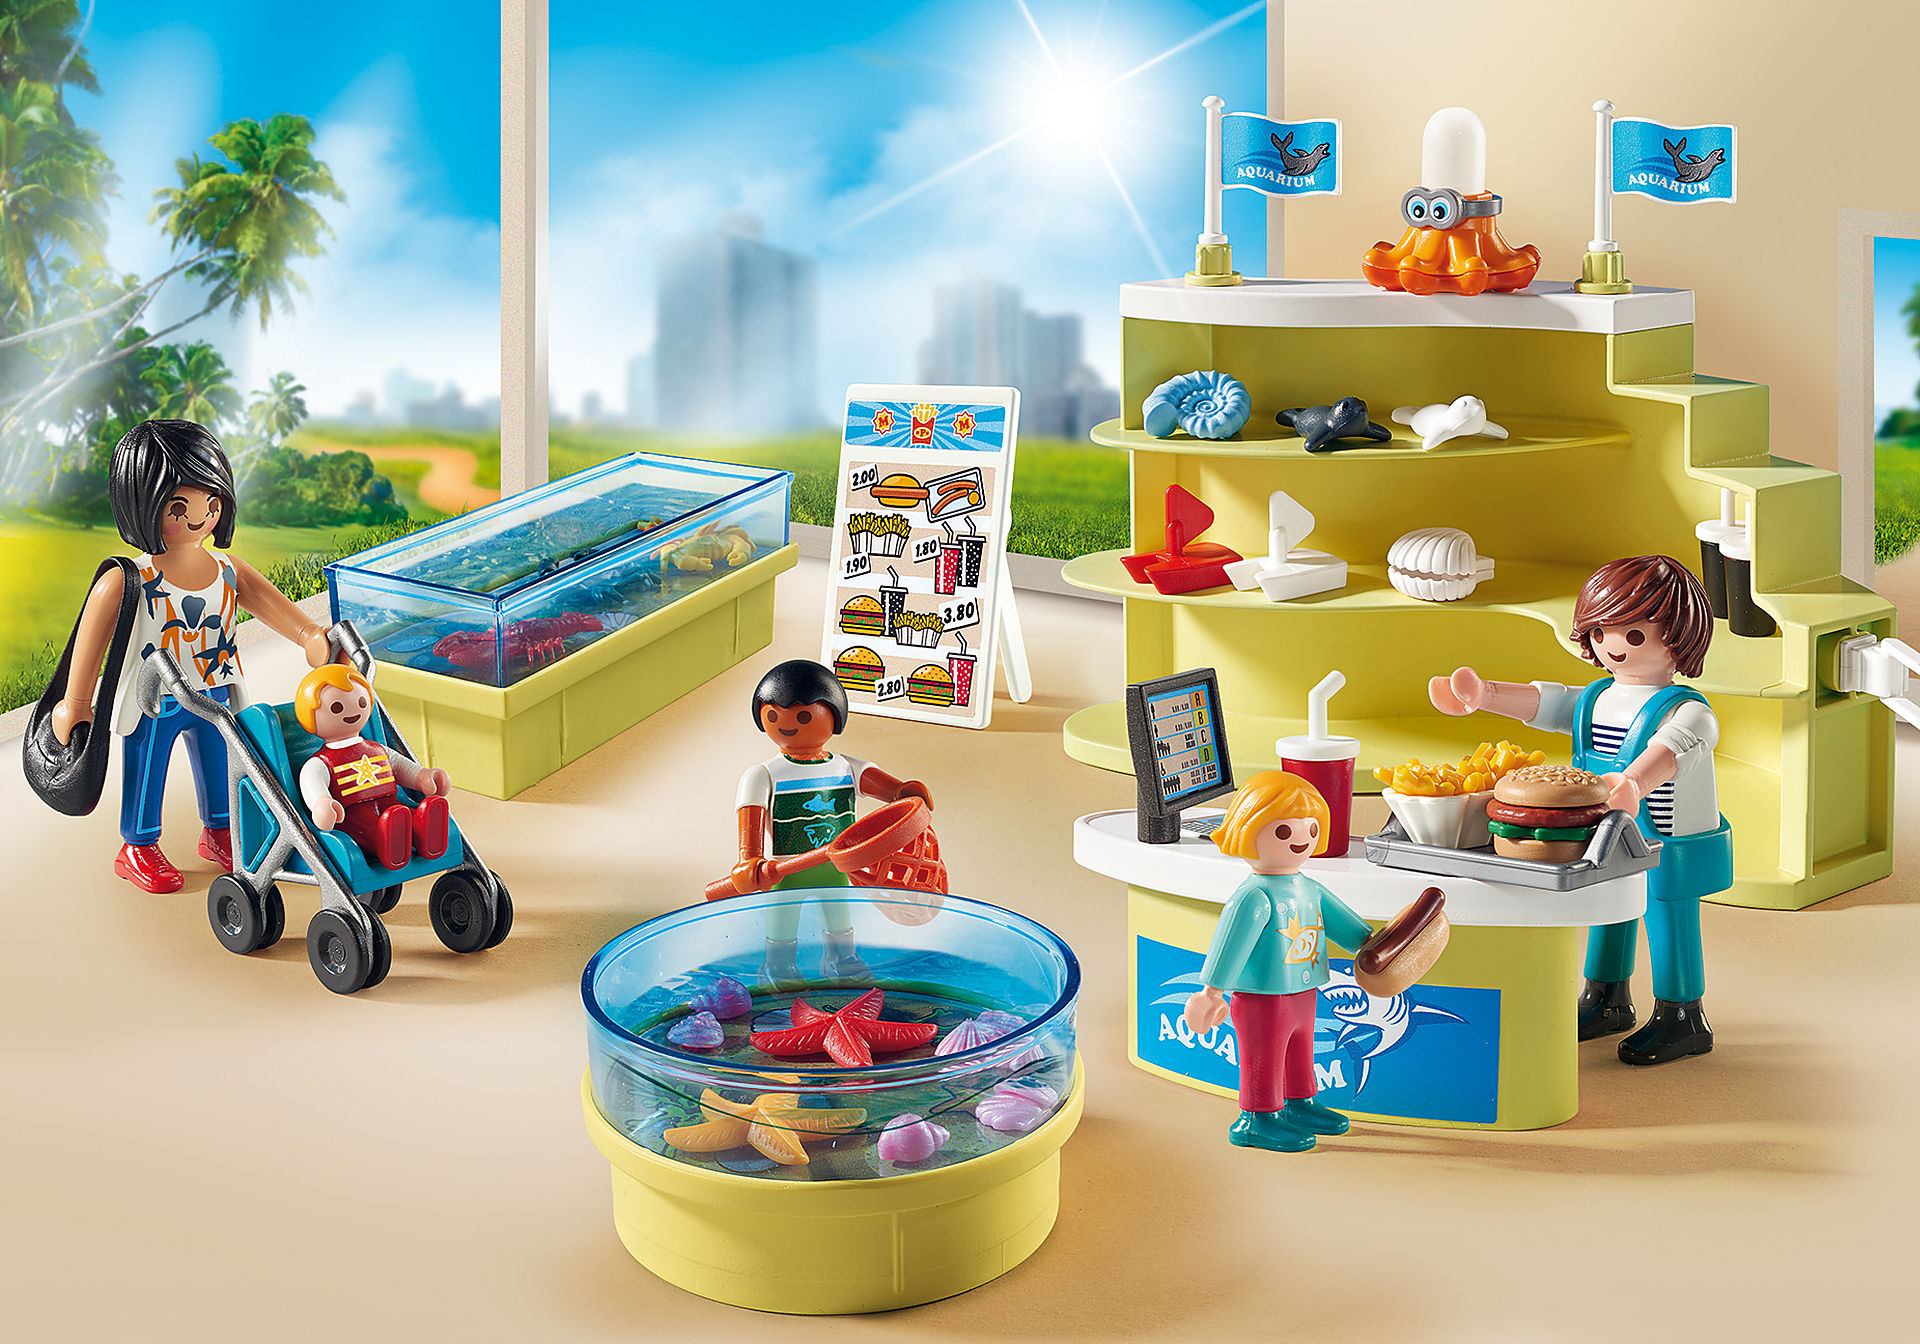 http://media.playmobil.com/i/playmobil/9061_product_detail/Aquarium Shop